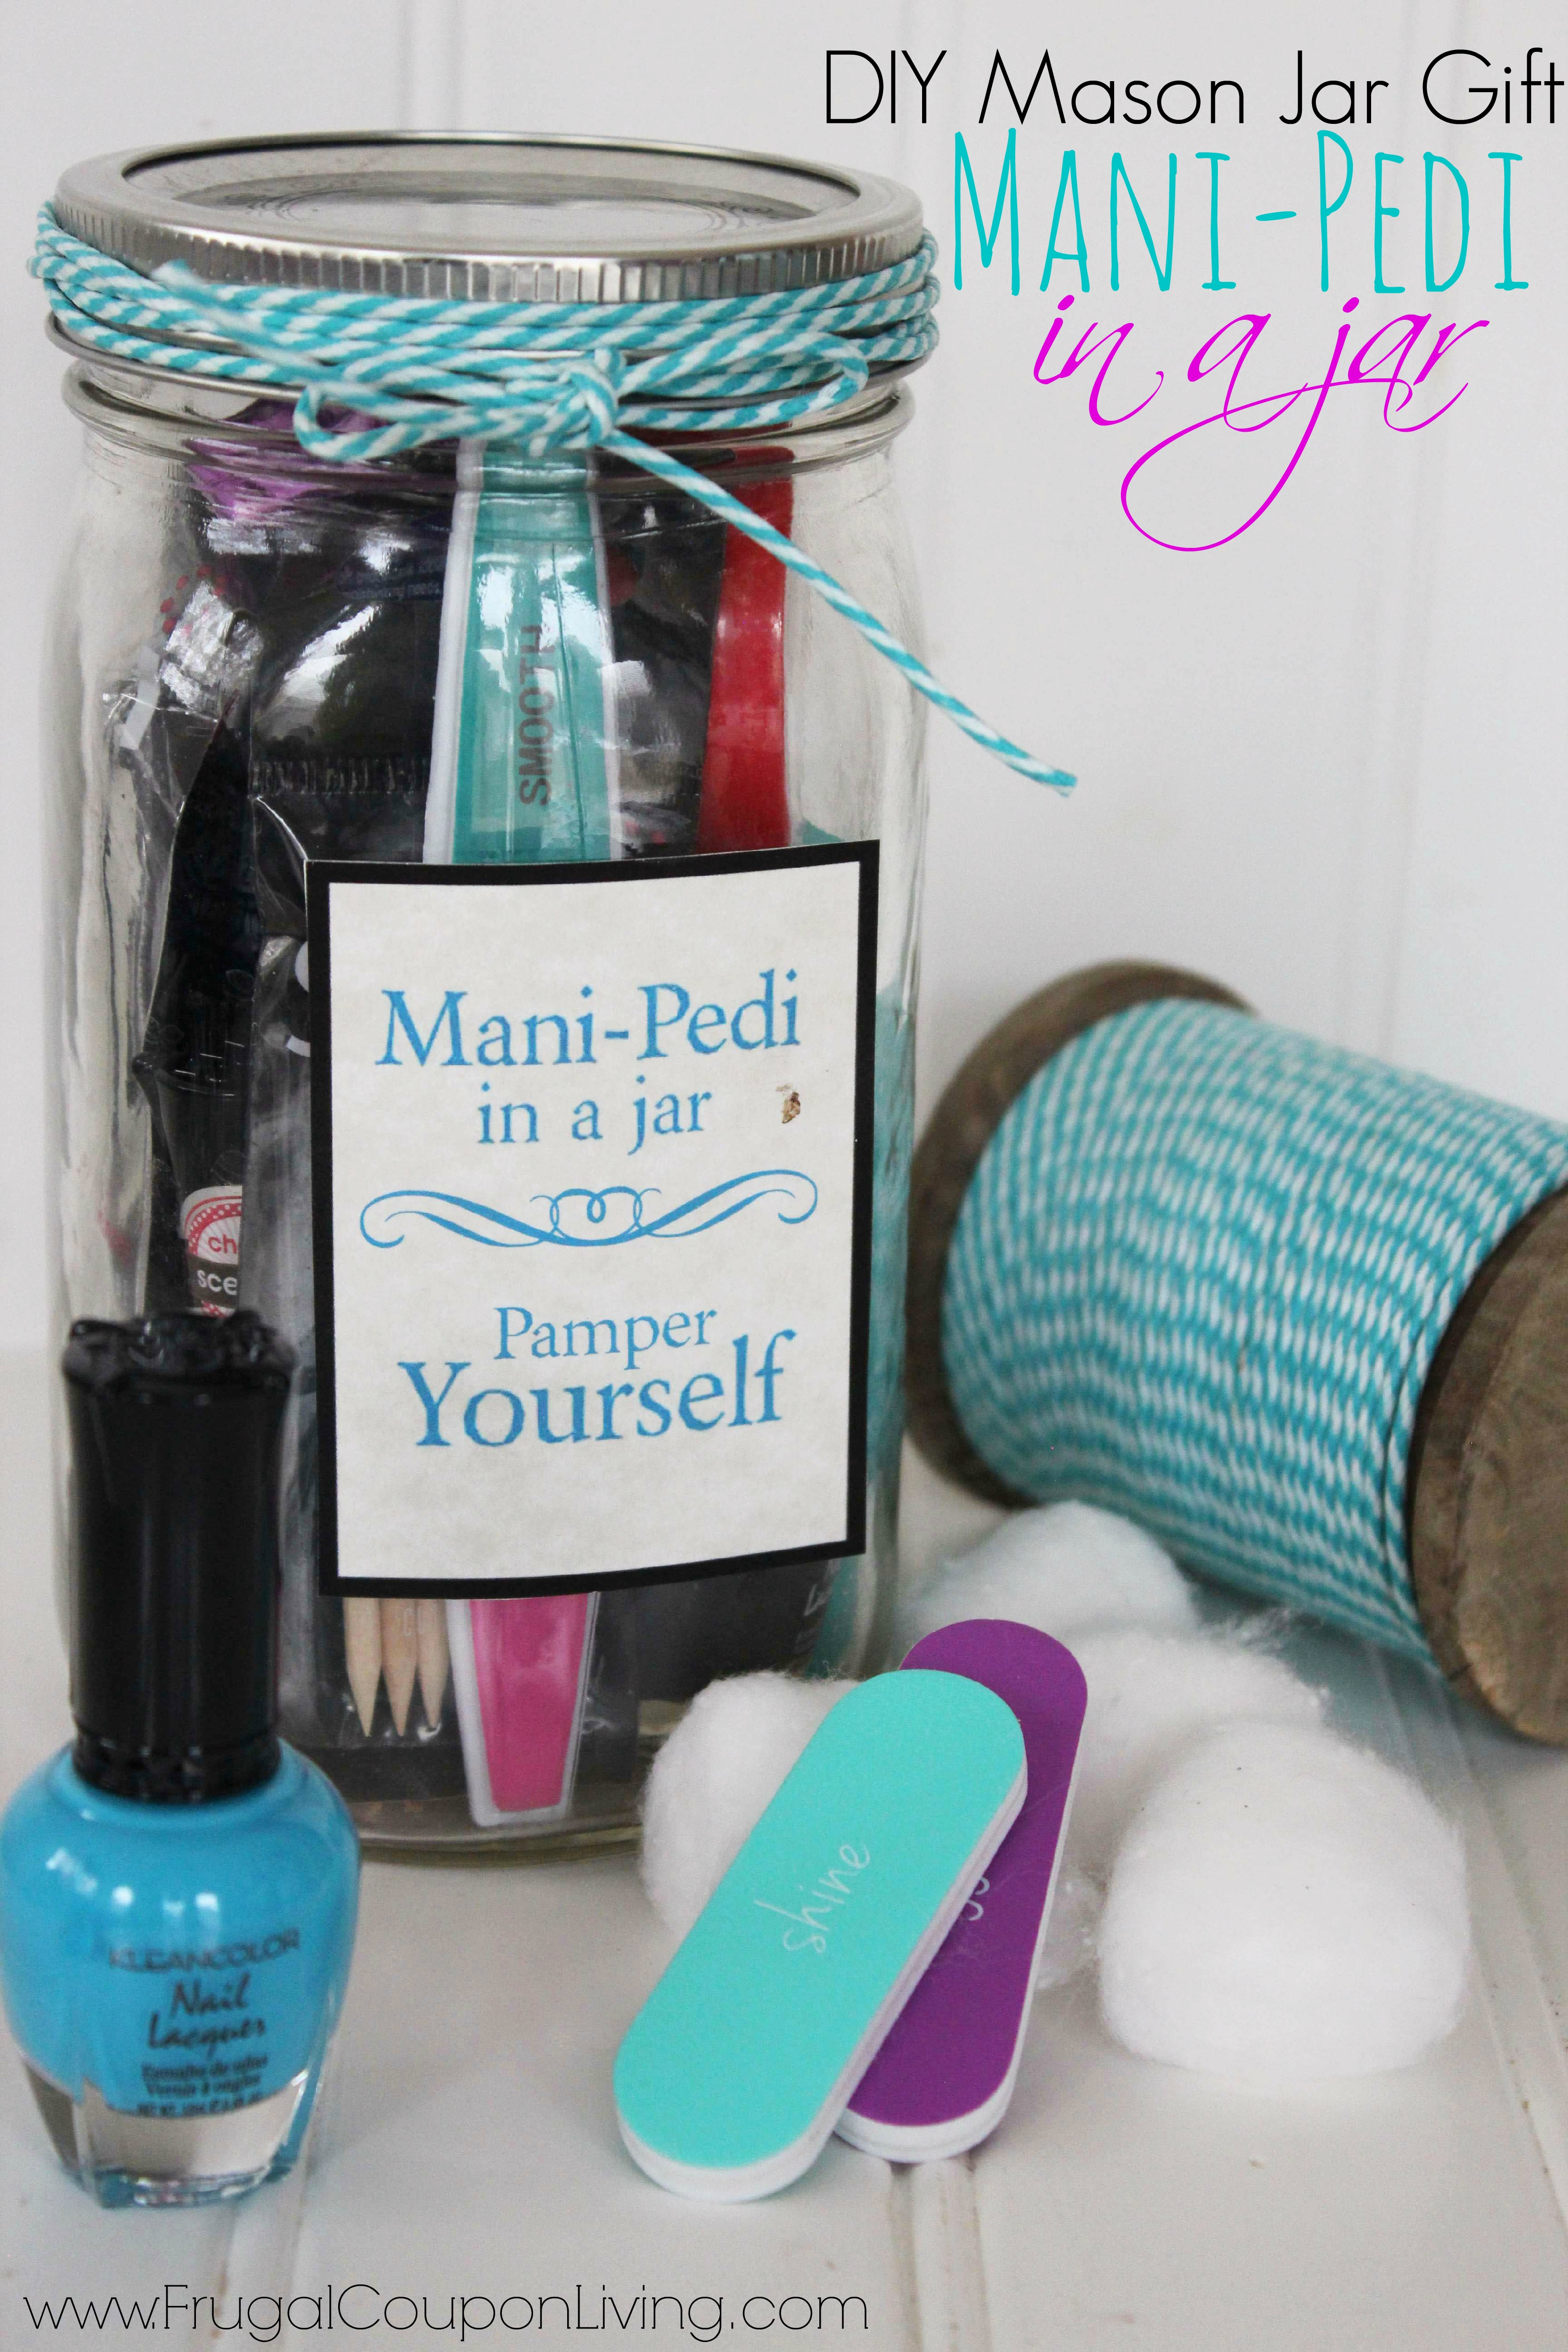 mani-pedi-in-a-jar-frugal-coupon-living